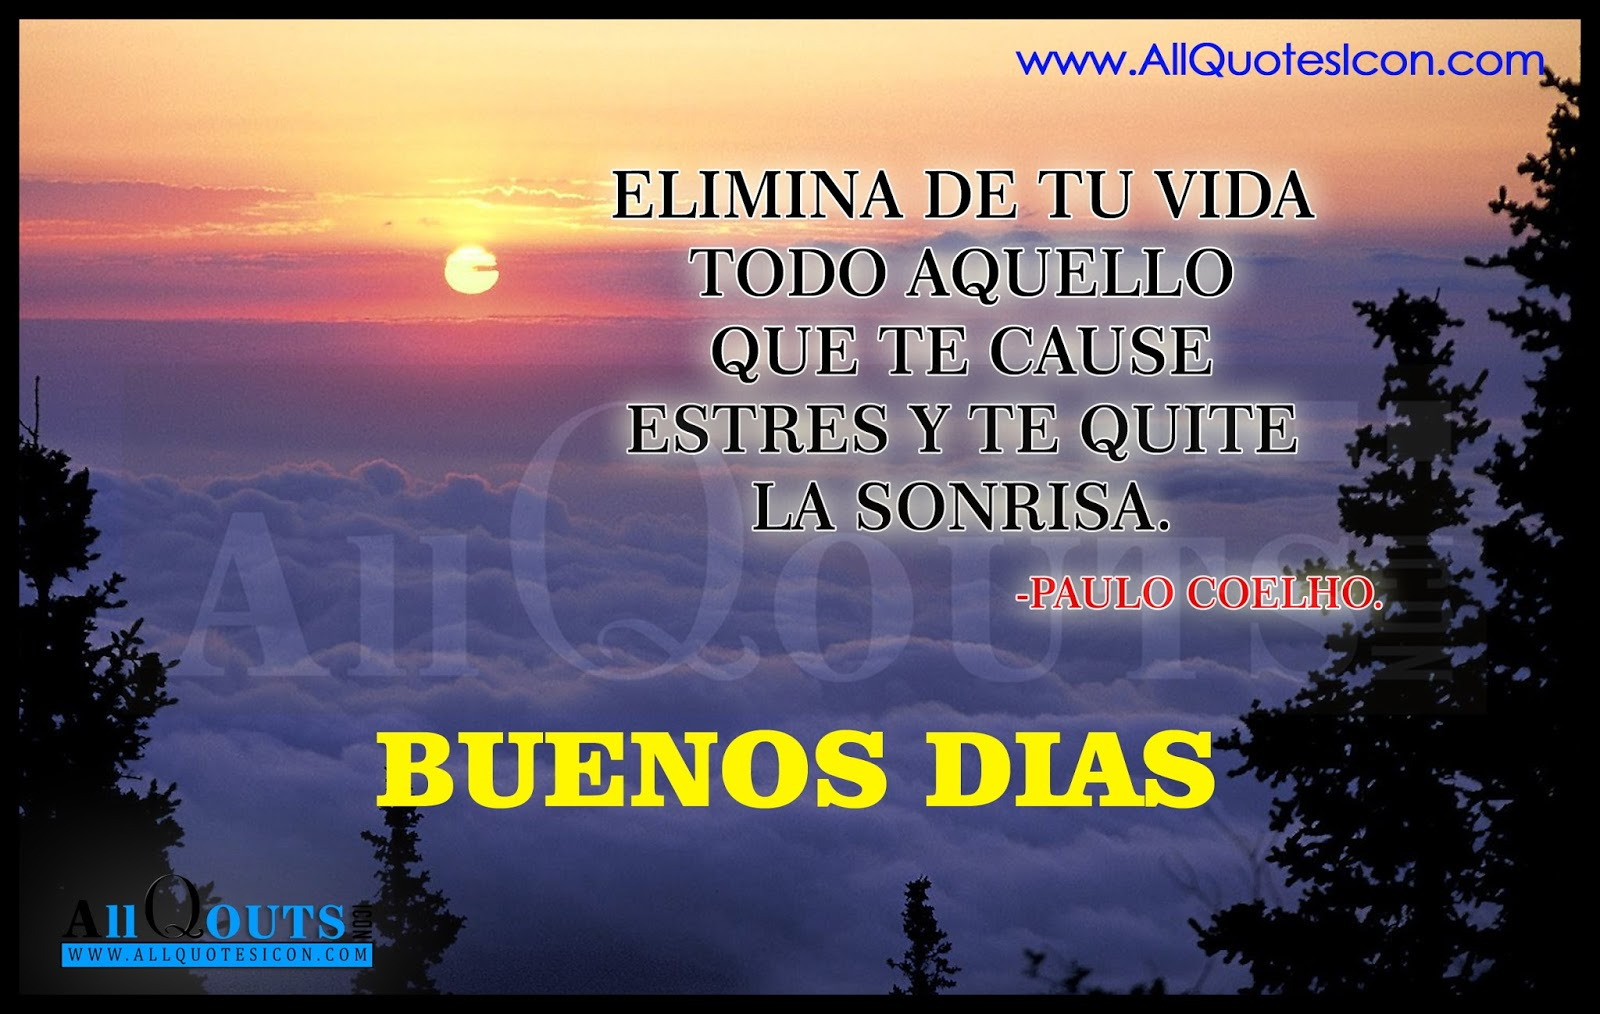 Good morning greetings in spanish image collections greetings card good morning motivation quotes and images allquotesicon m4hsunfo